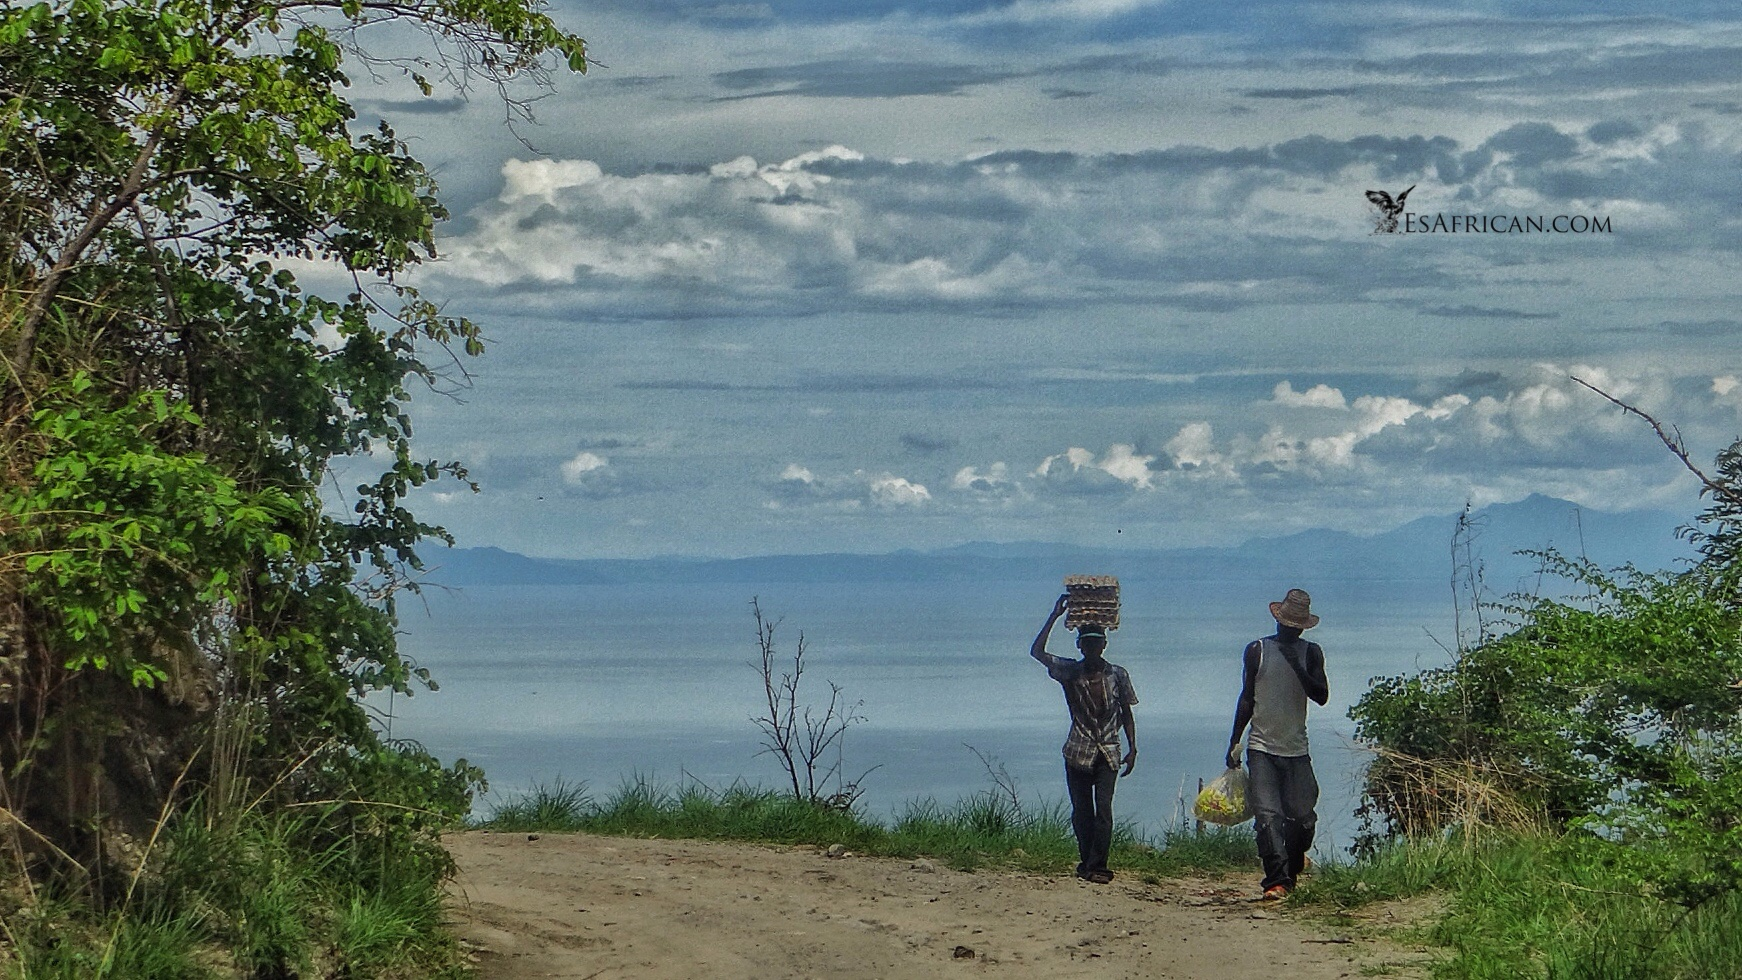 Lake Malawi view from the notorious Livingstonia Road. Some people prefer to hike this route but I did not find any great problem with the road. I have a list of very interesting roads I have driven in Malawi. Many prefer to walk on those routes..